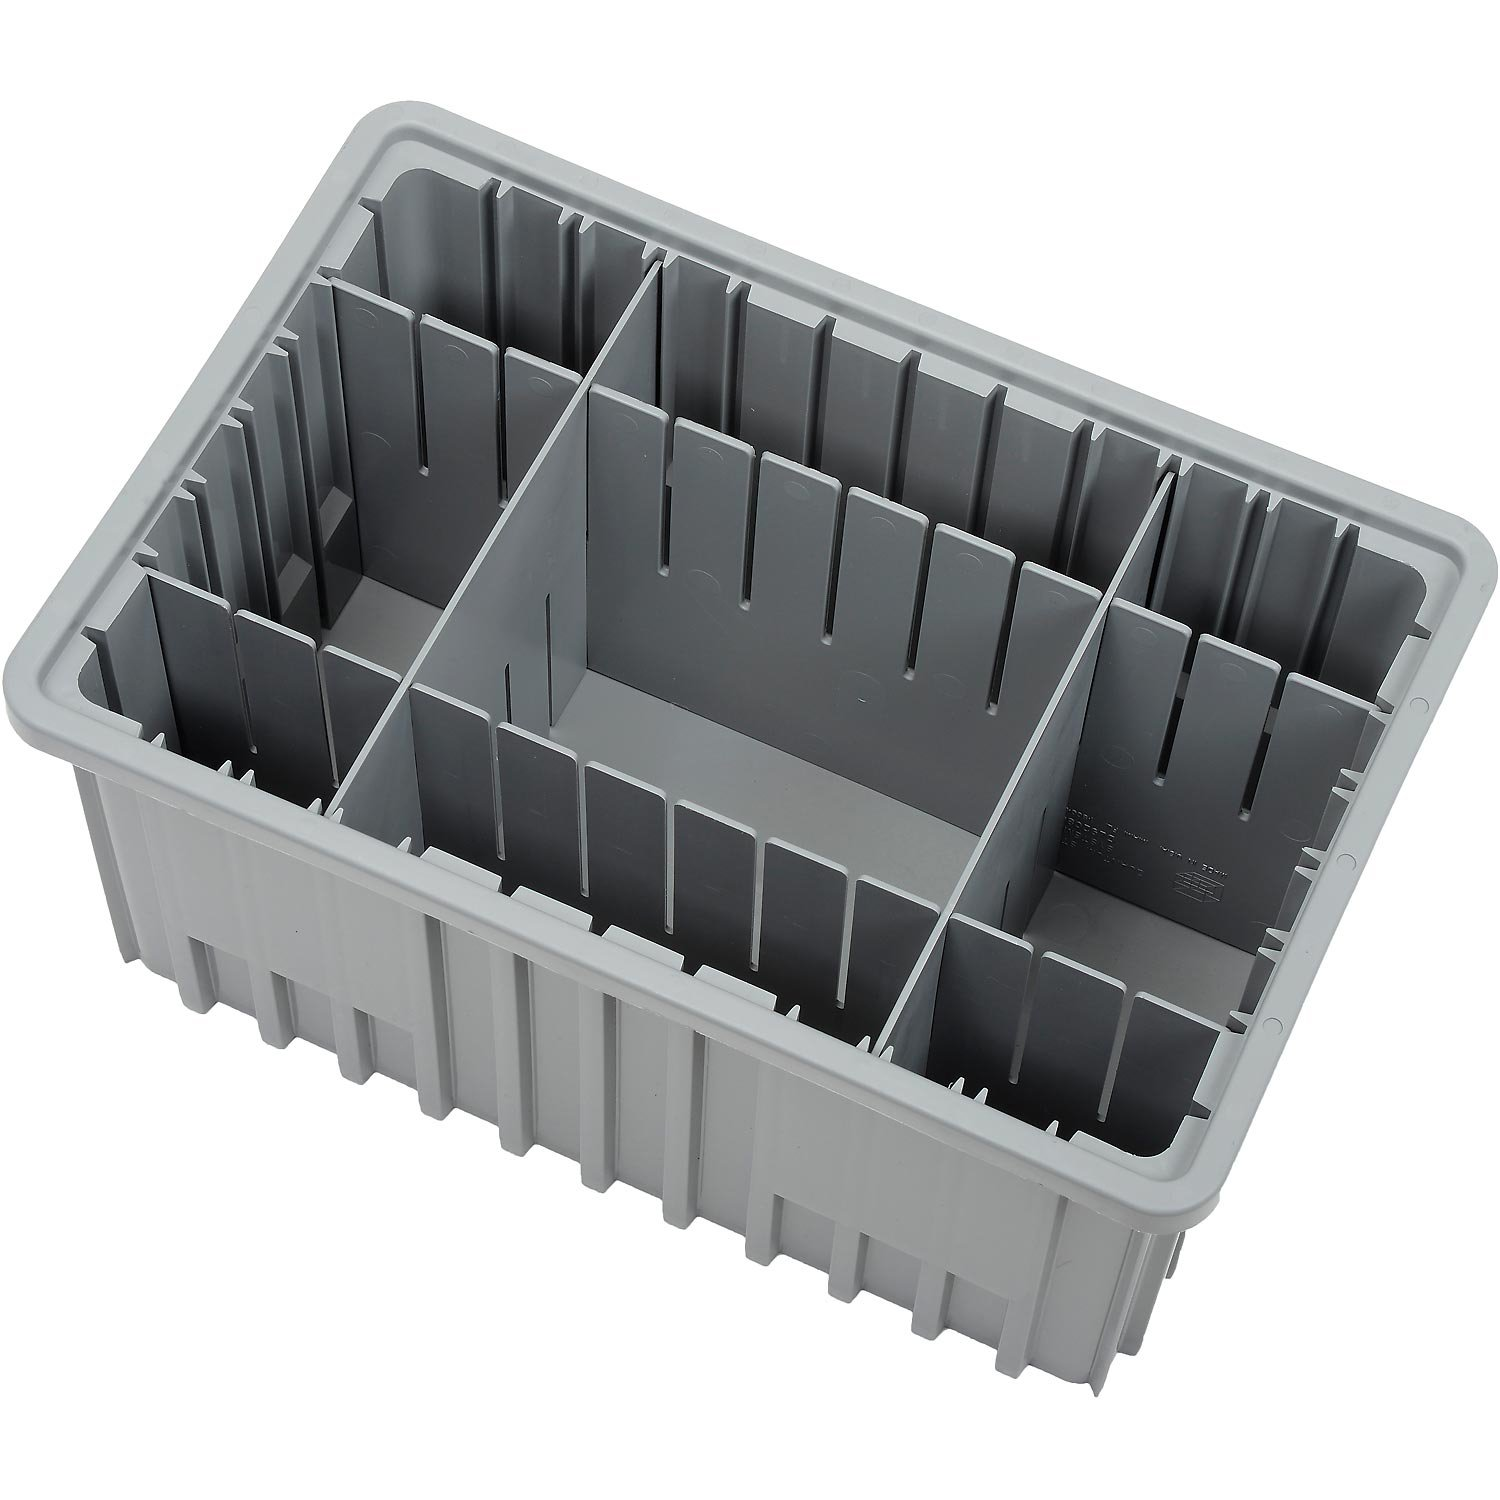 Plastic Dividable Grid Container, 16-1/2''L x 10-7/8''W x 8''H, Gray - Lot of 8